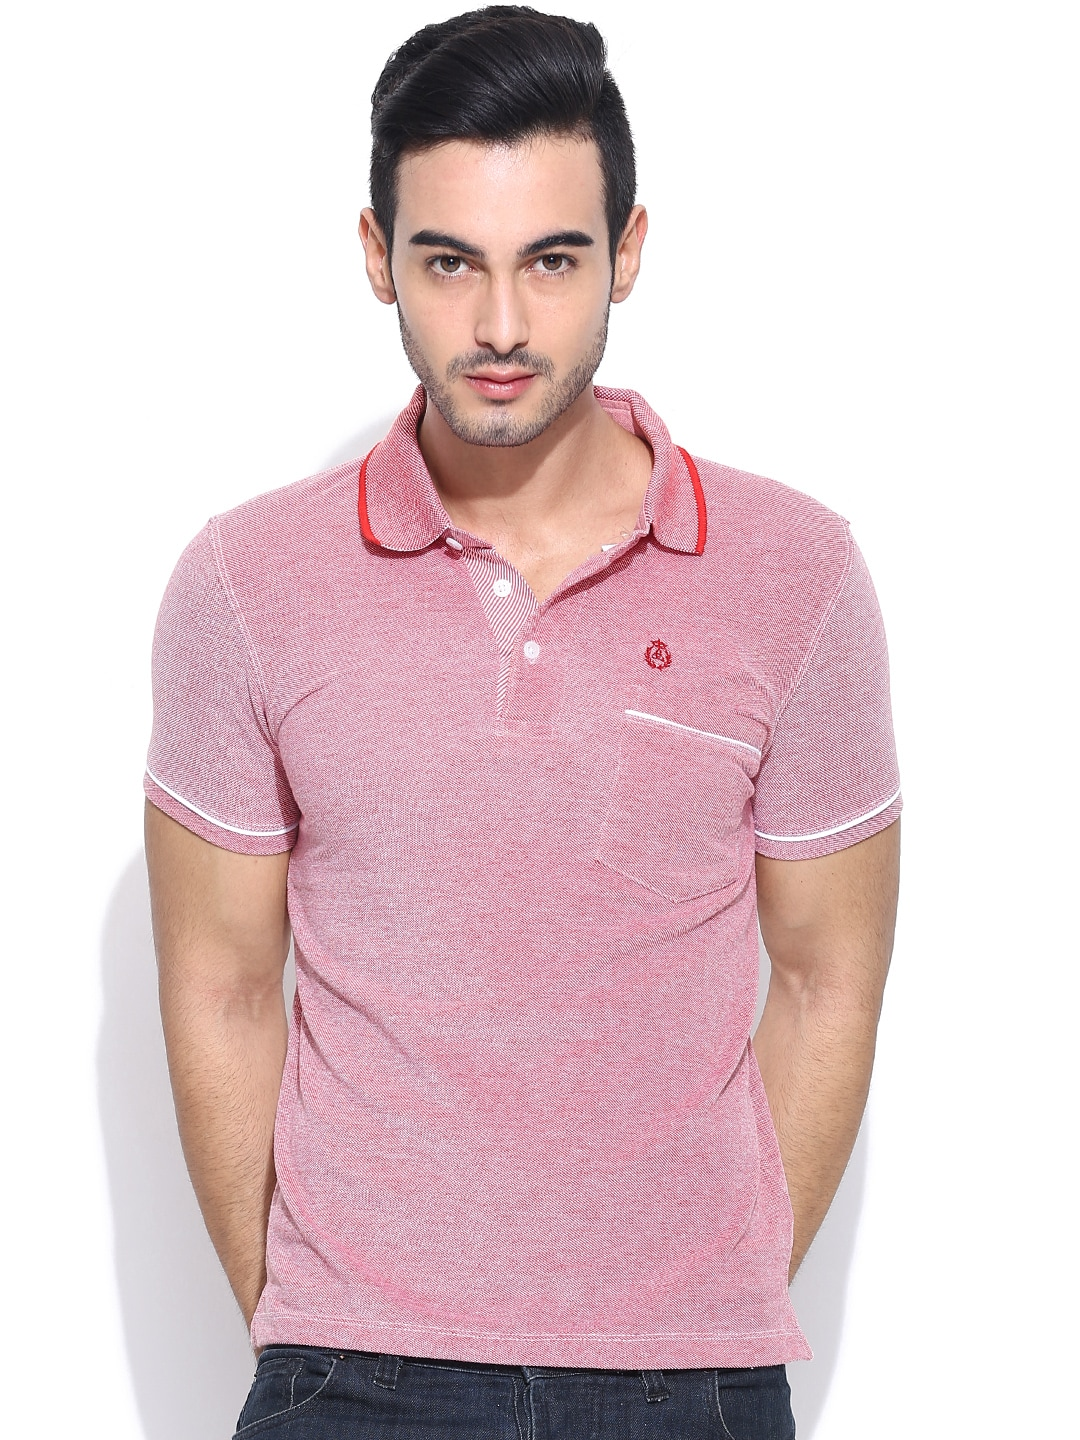 95604df9 Duke lf1963-red Stardust Red Polo T Shirt - Best Price in India | priceiq  ...